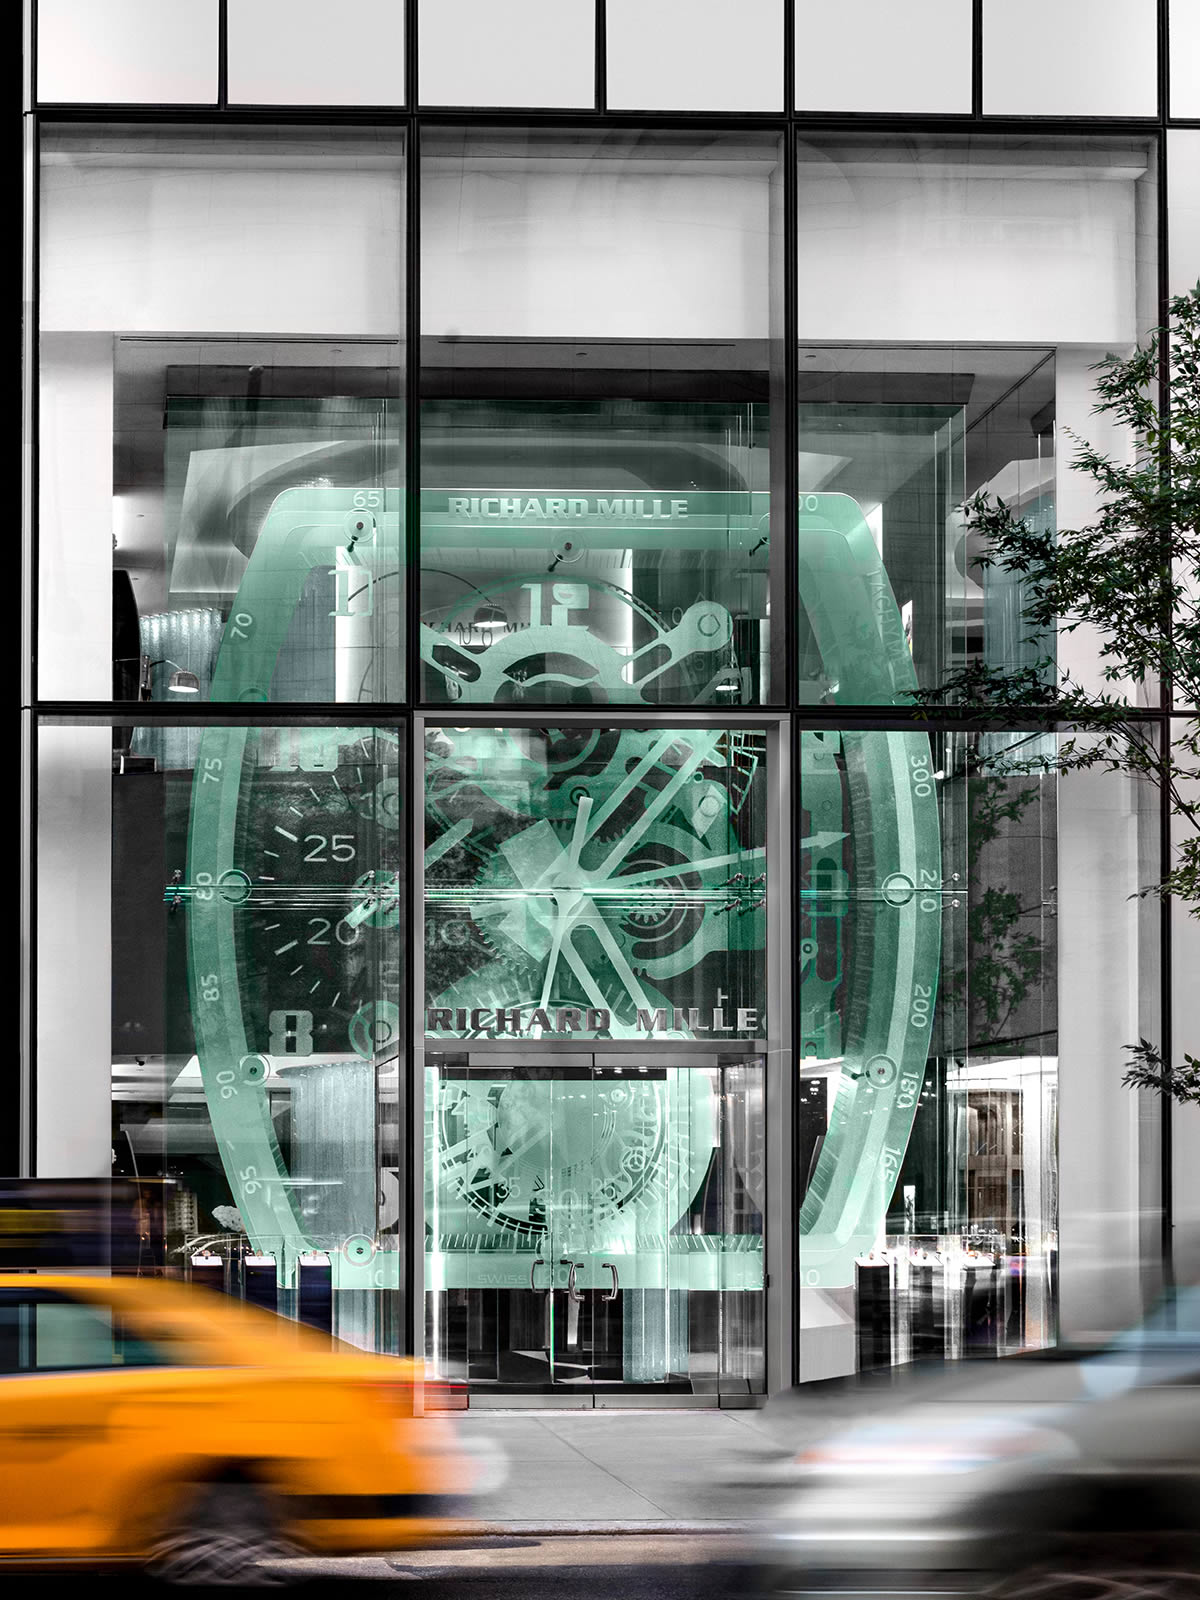 richard-mille-new-york-butik-1-.jpg